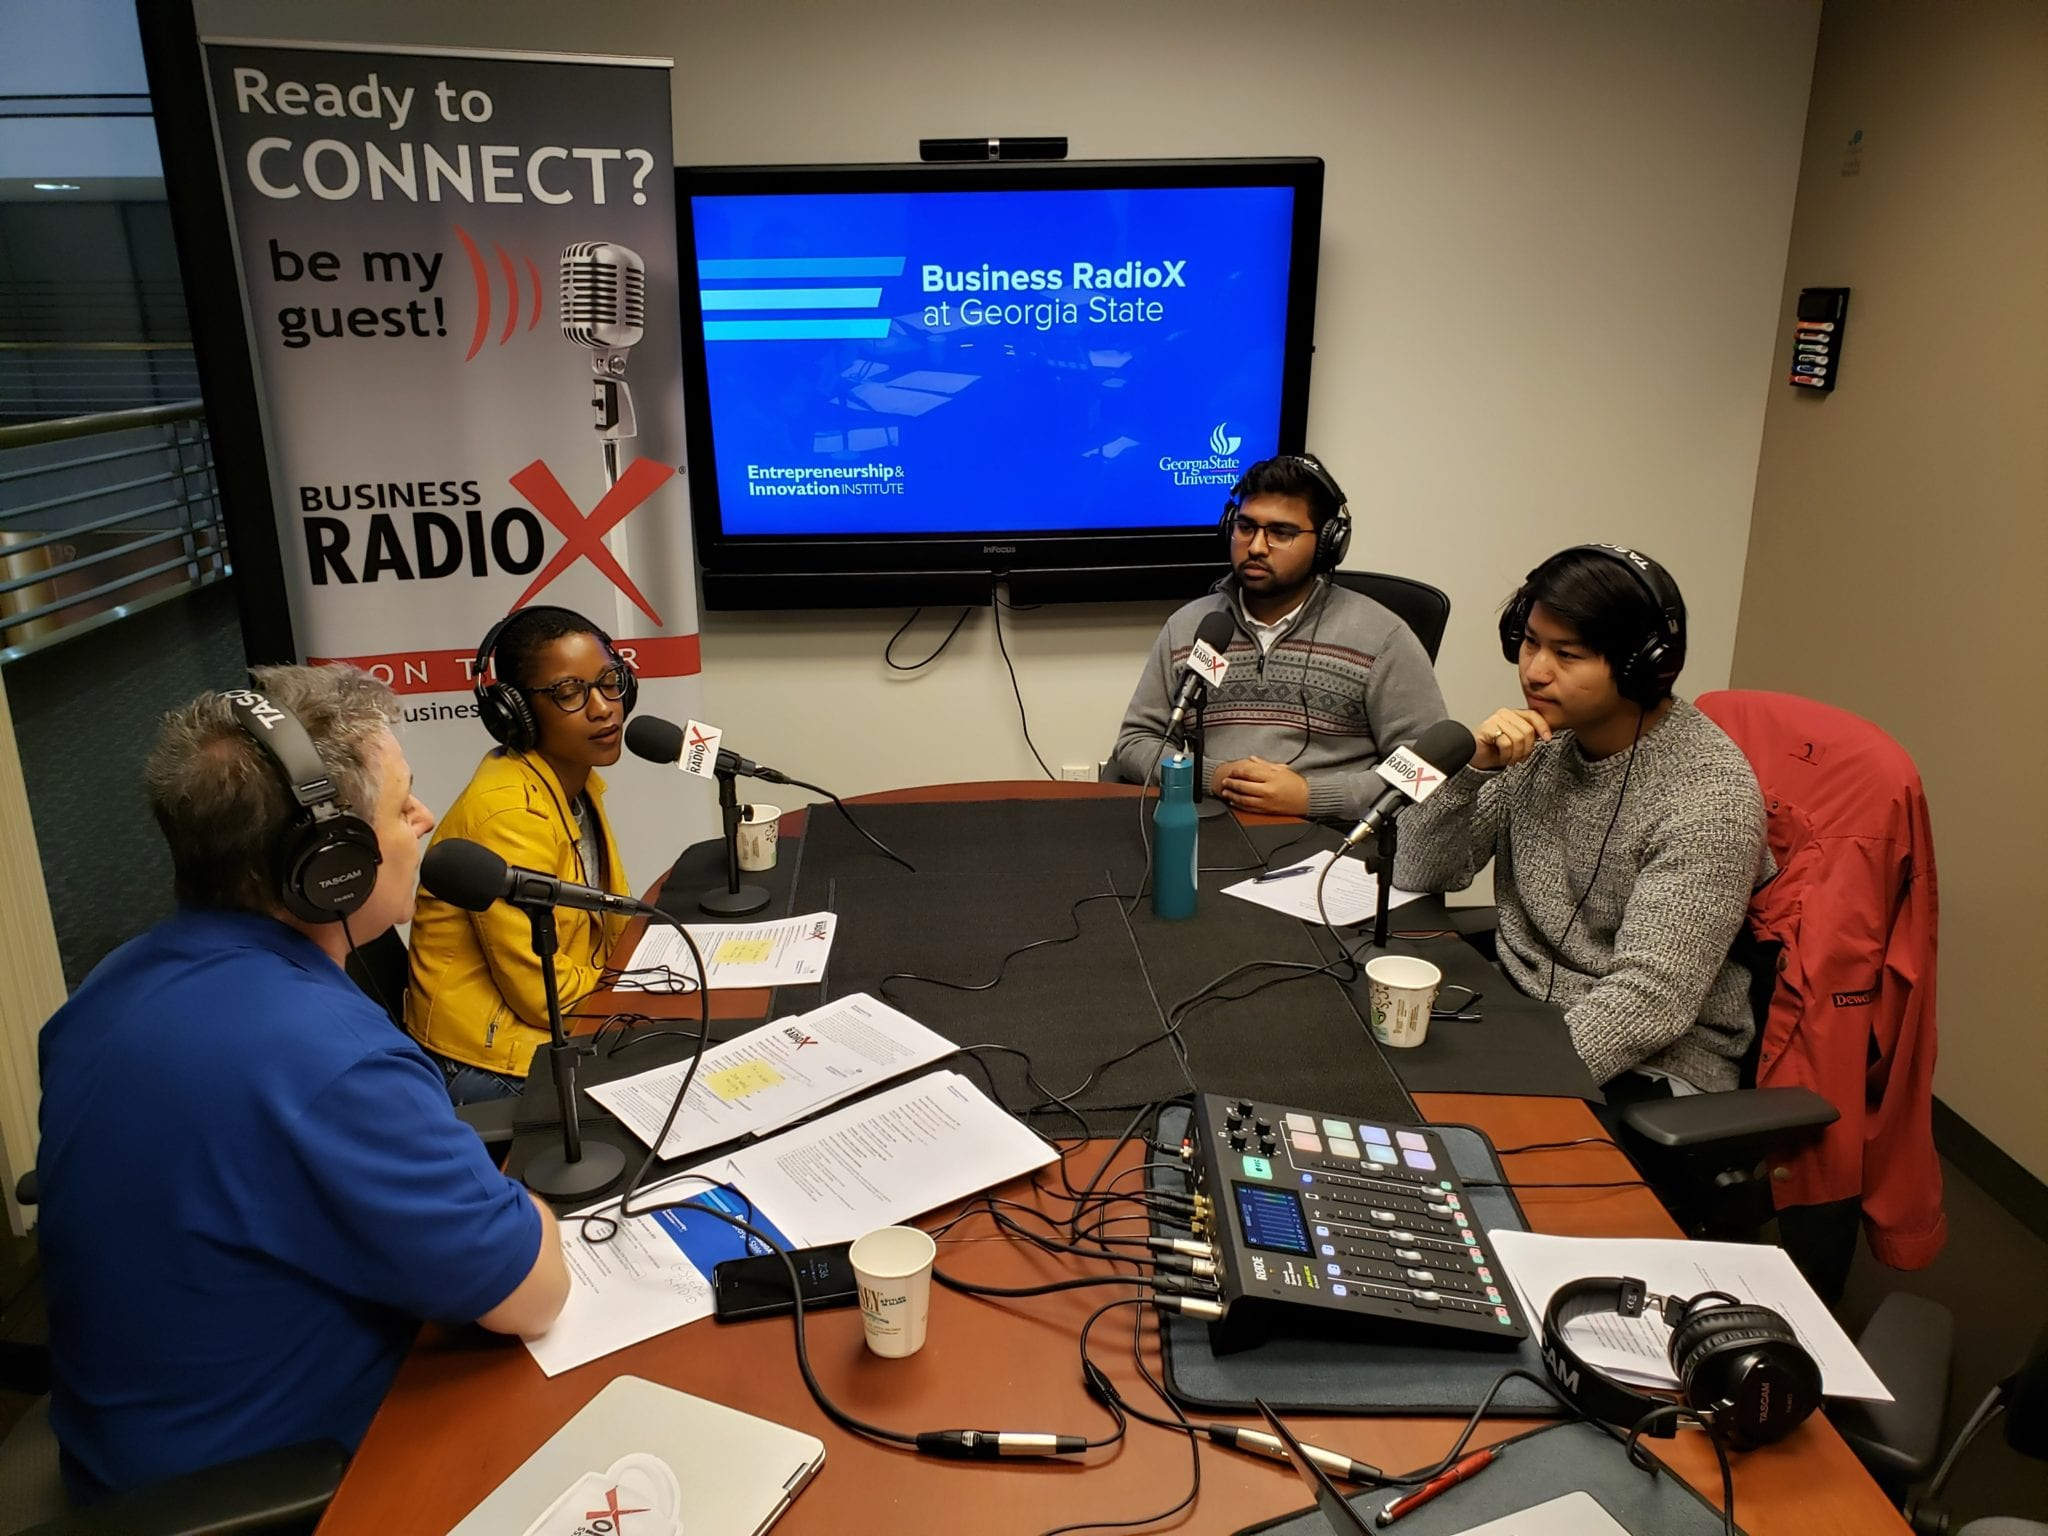 business radiox participants